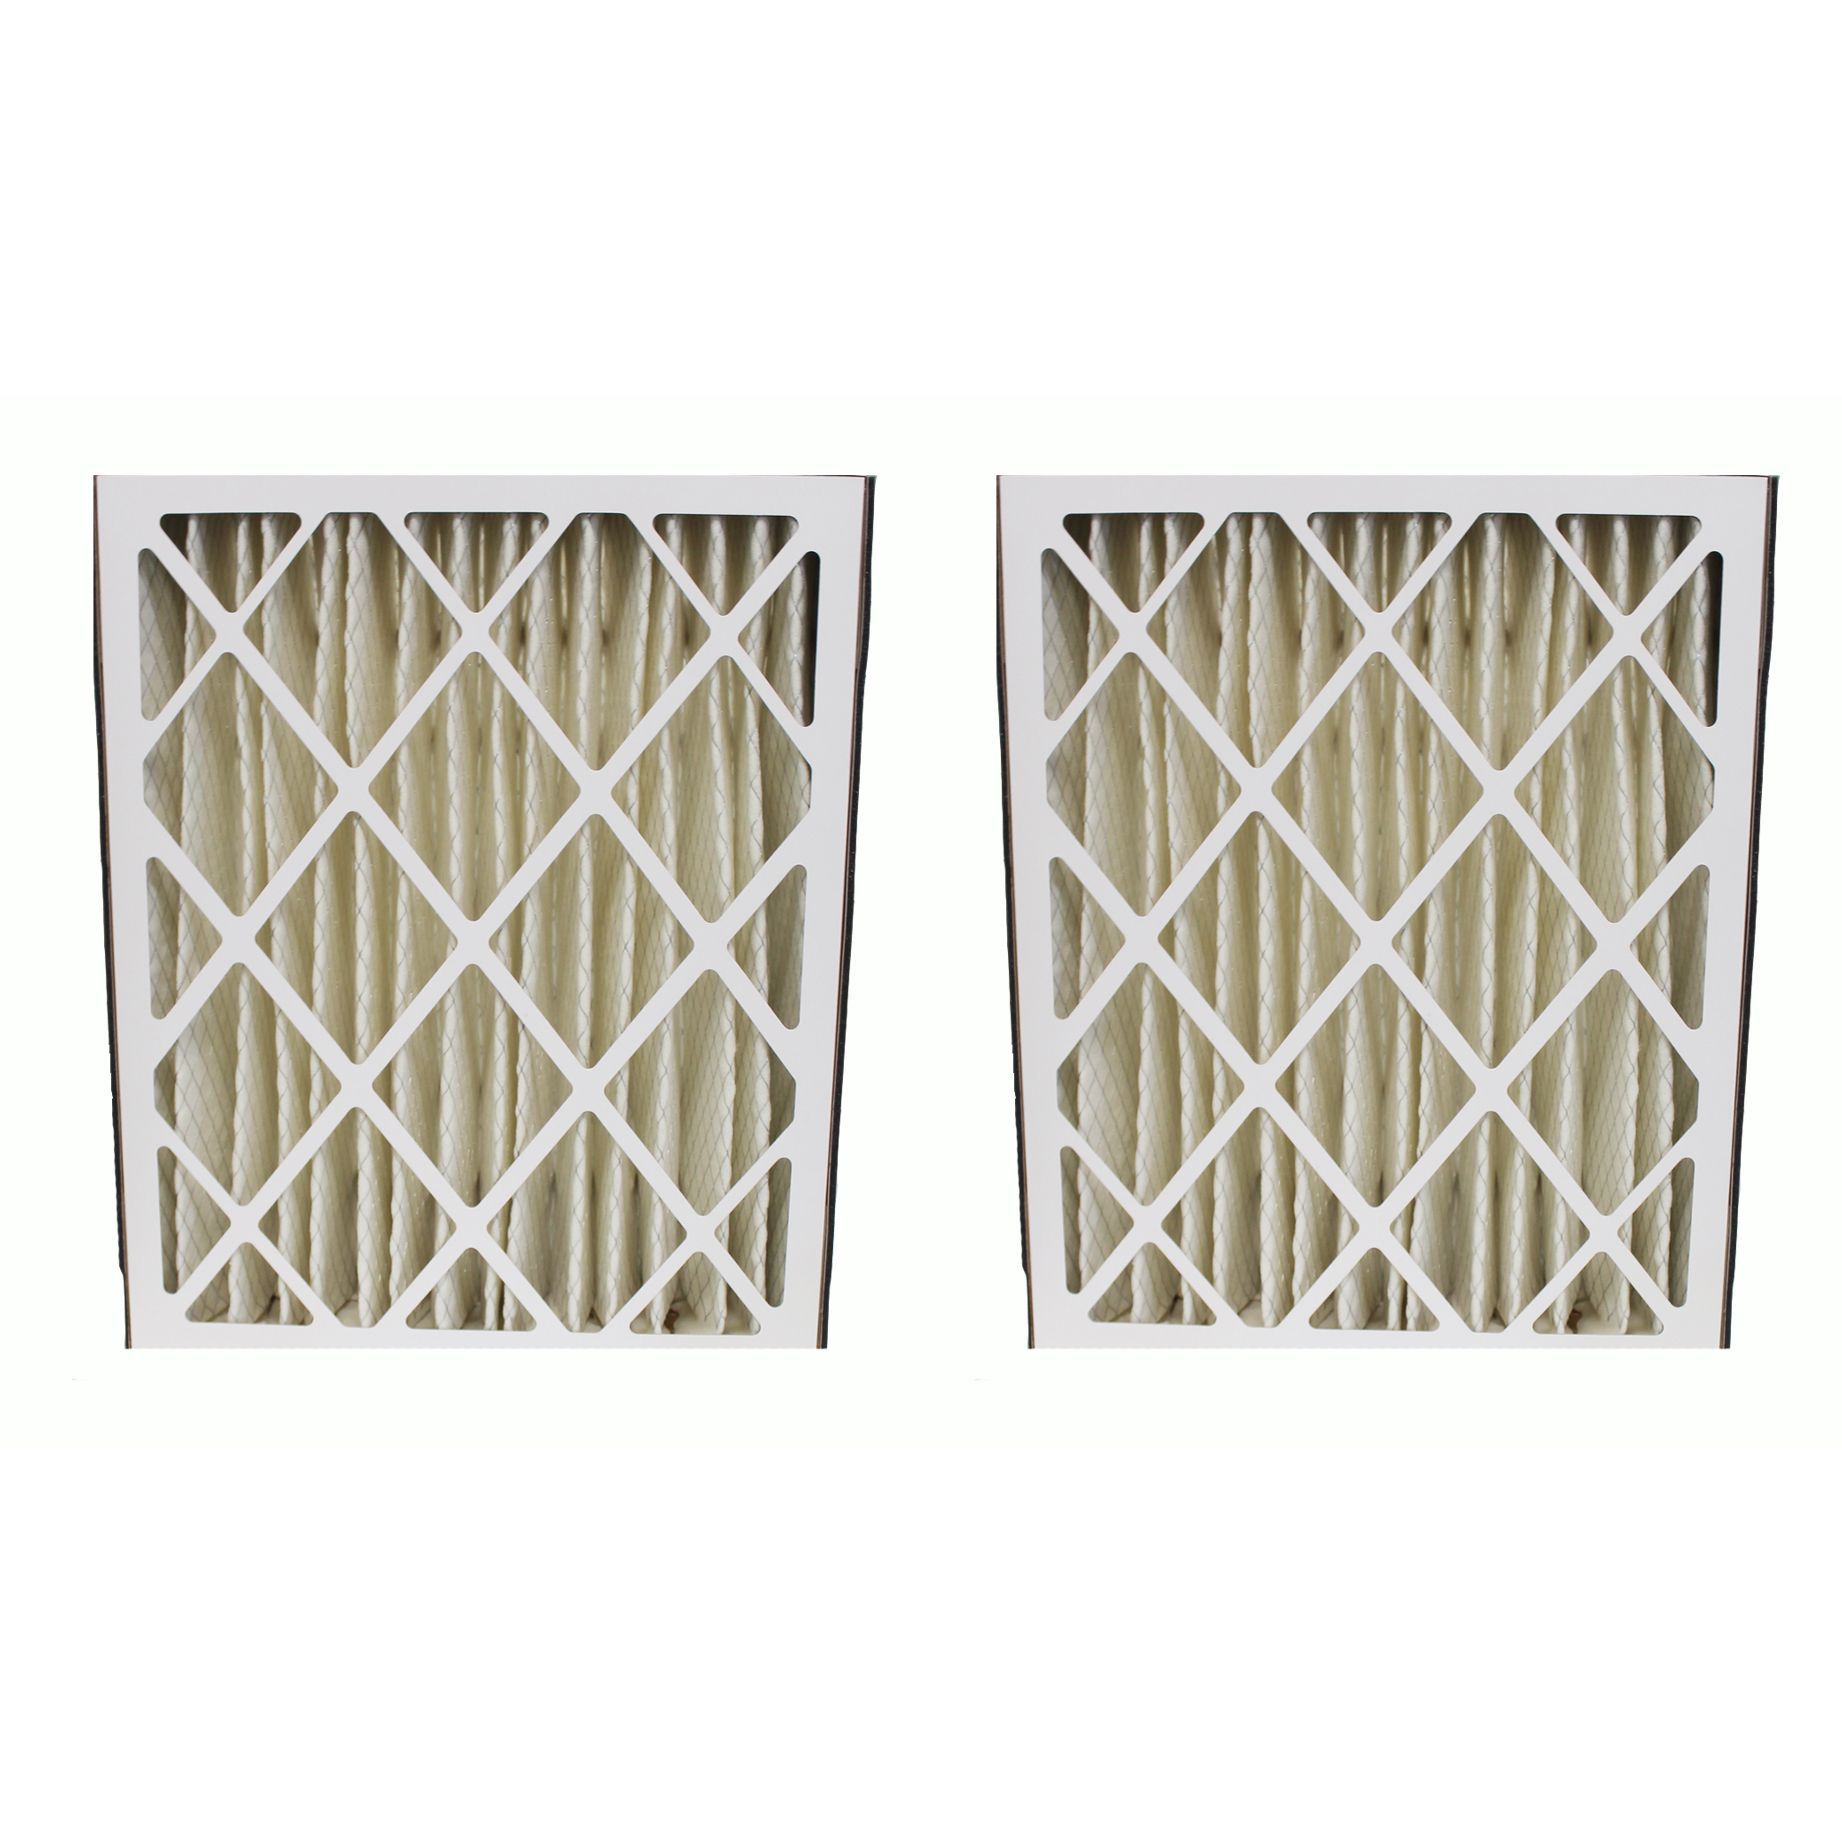 Crucial Ultravation-compatible 91-006 Pleated Furnace Air Filter 20x25x5 Merv 8